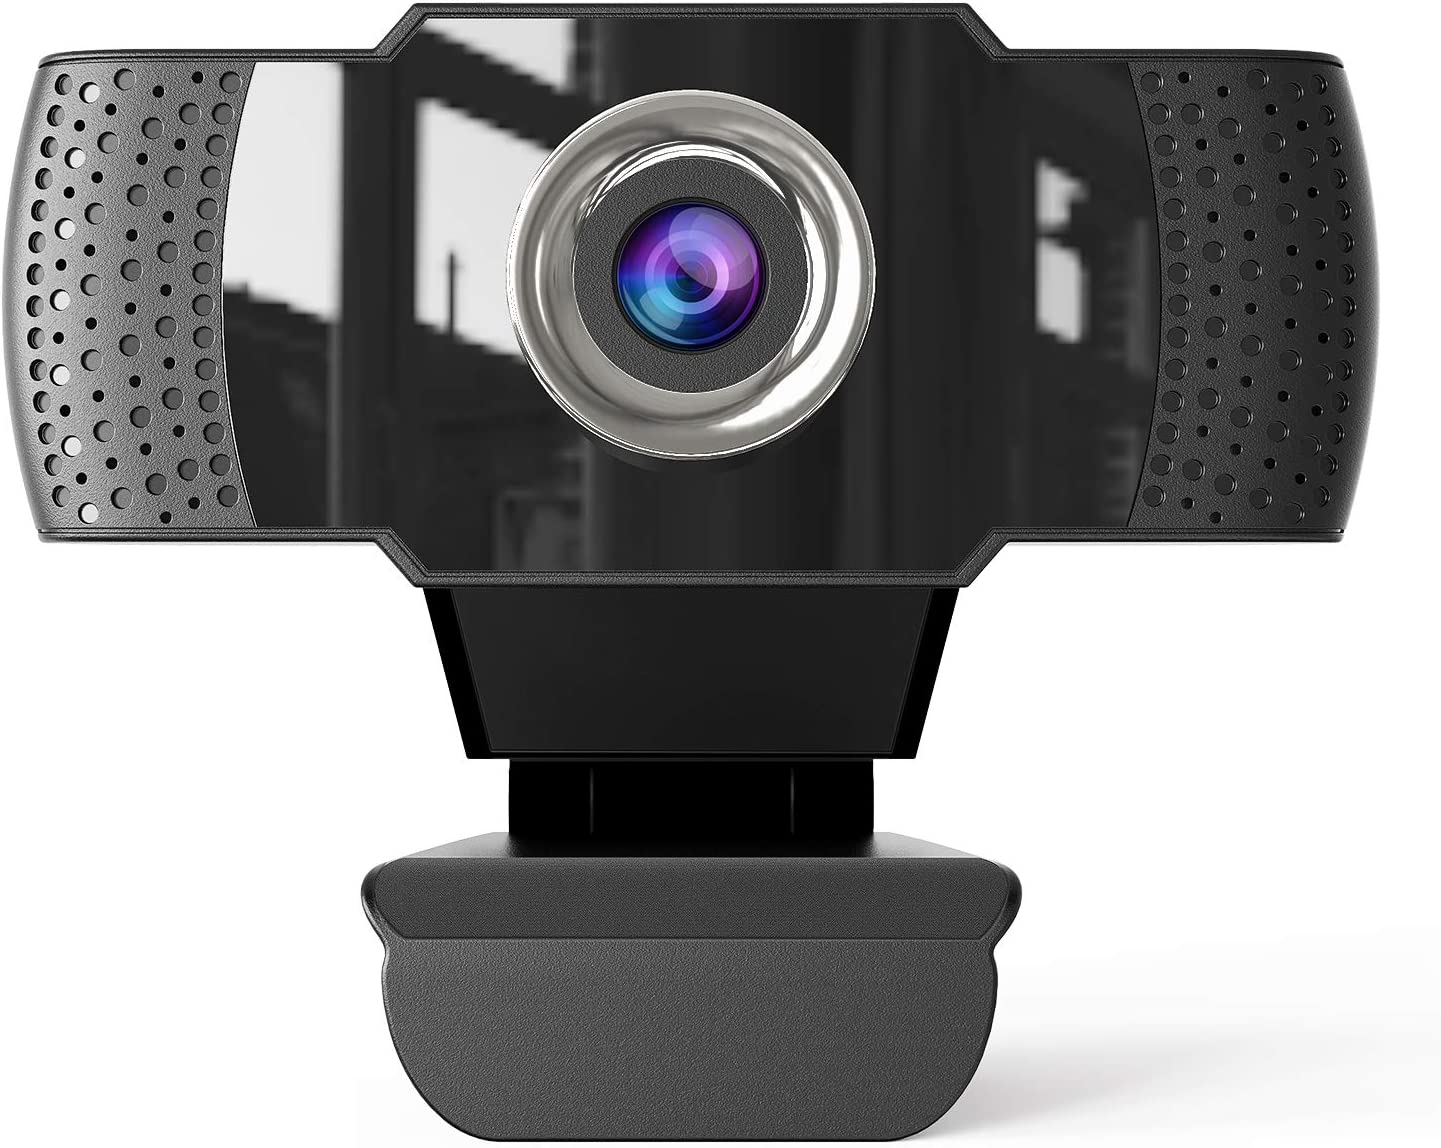 1080P Webcam with Microphone FHD Web Cam with Privacy Cover Plug and Play USB Web Camera for Desktop /& Laptop Video Conferencing//Calling//Skype//YouTube//Zoom//Facetime